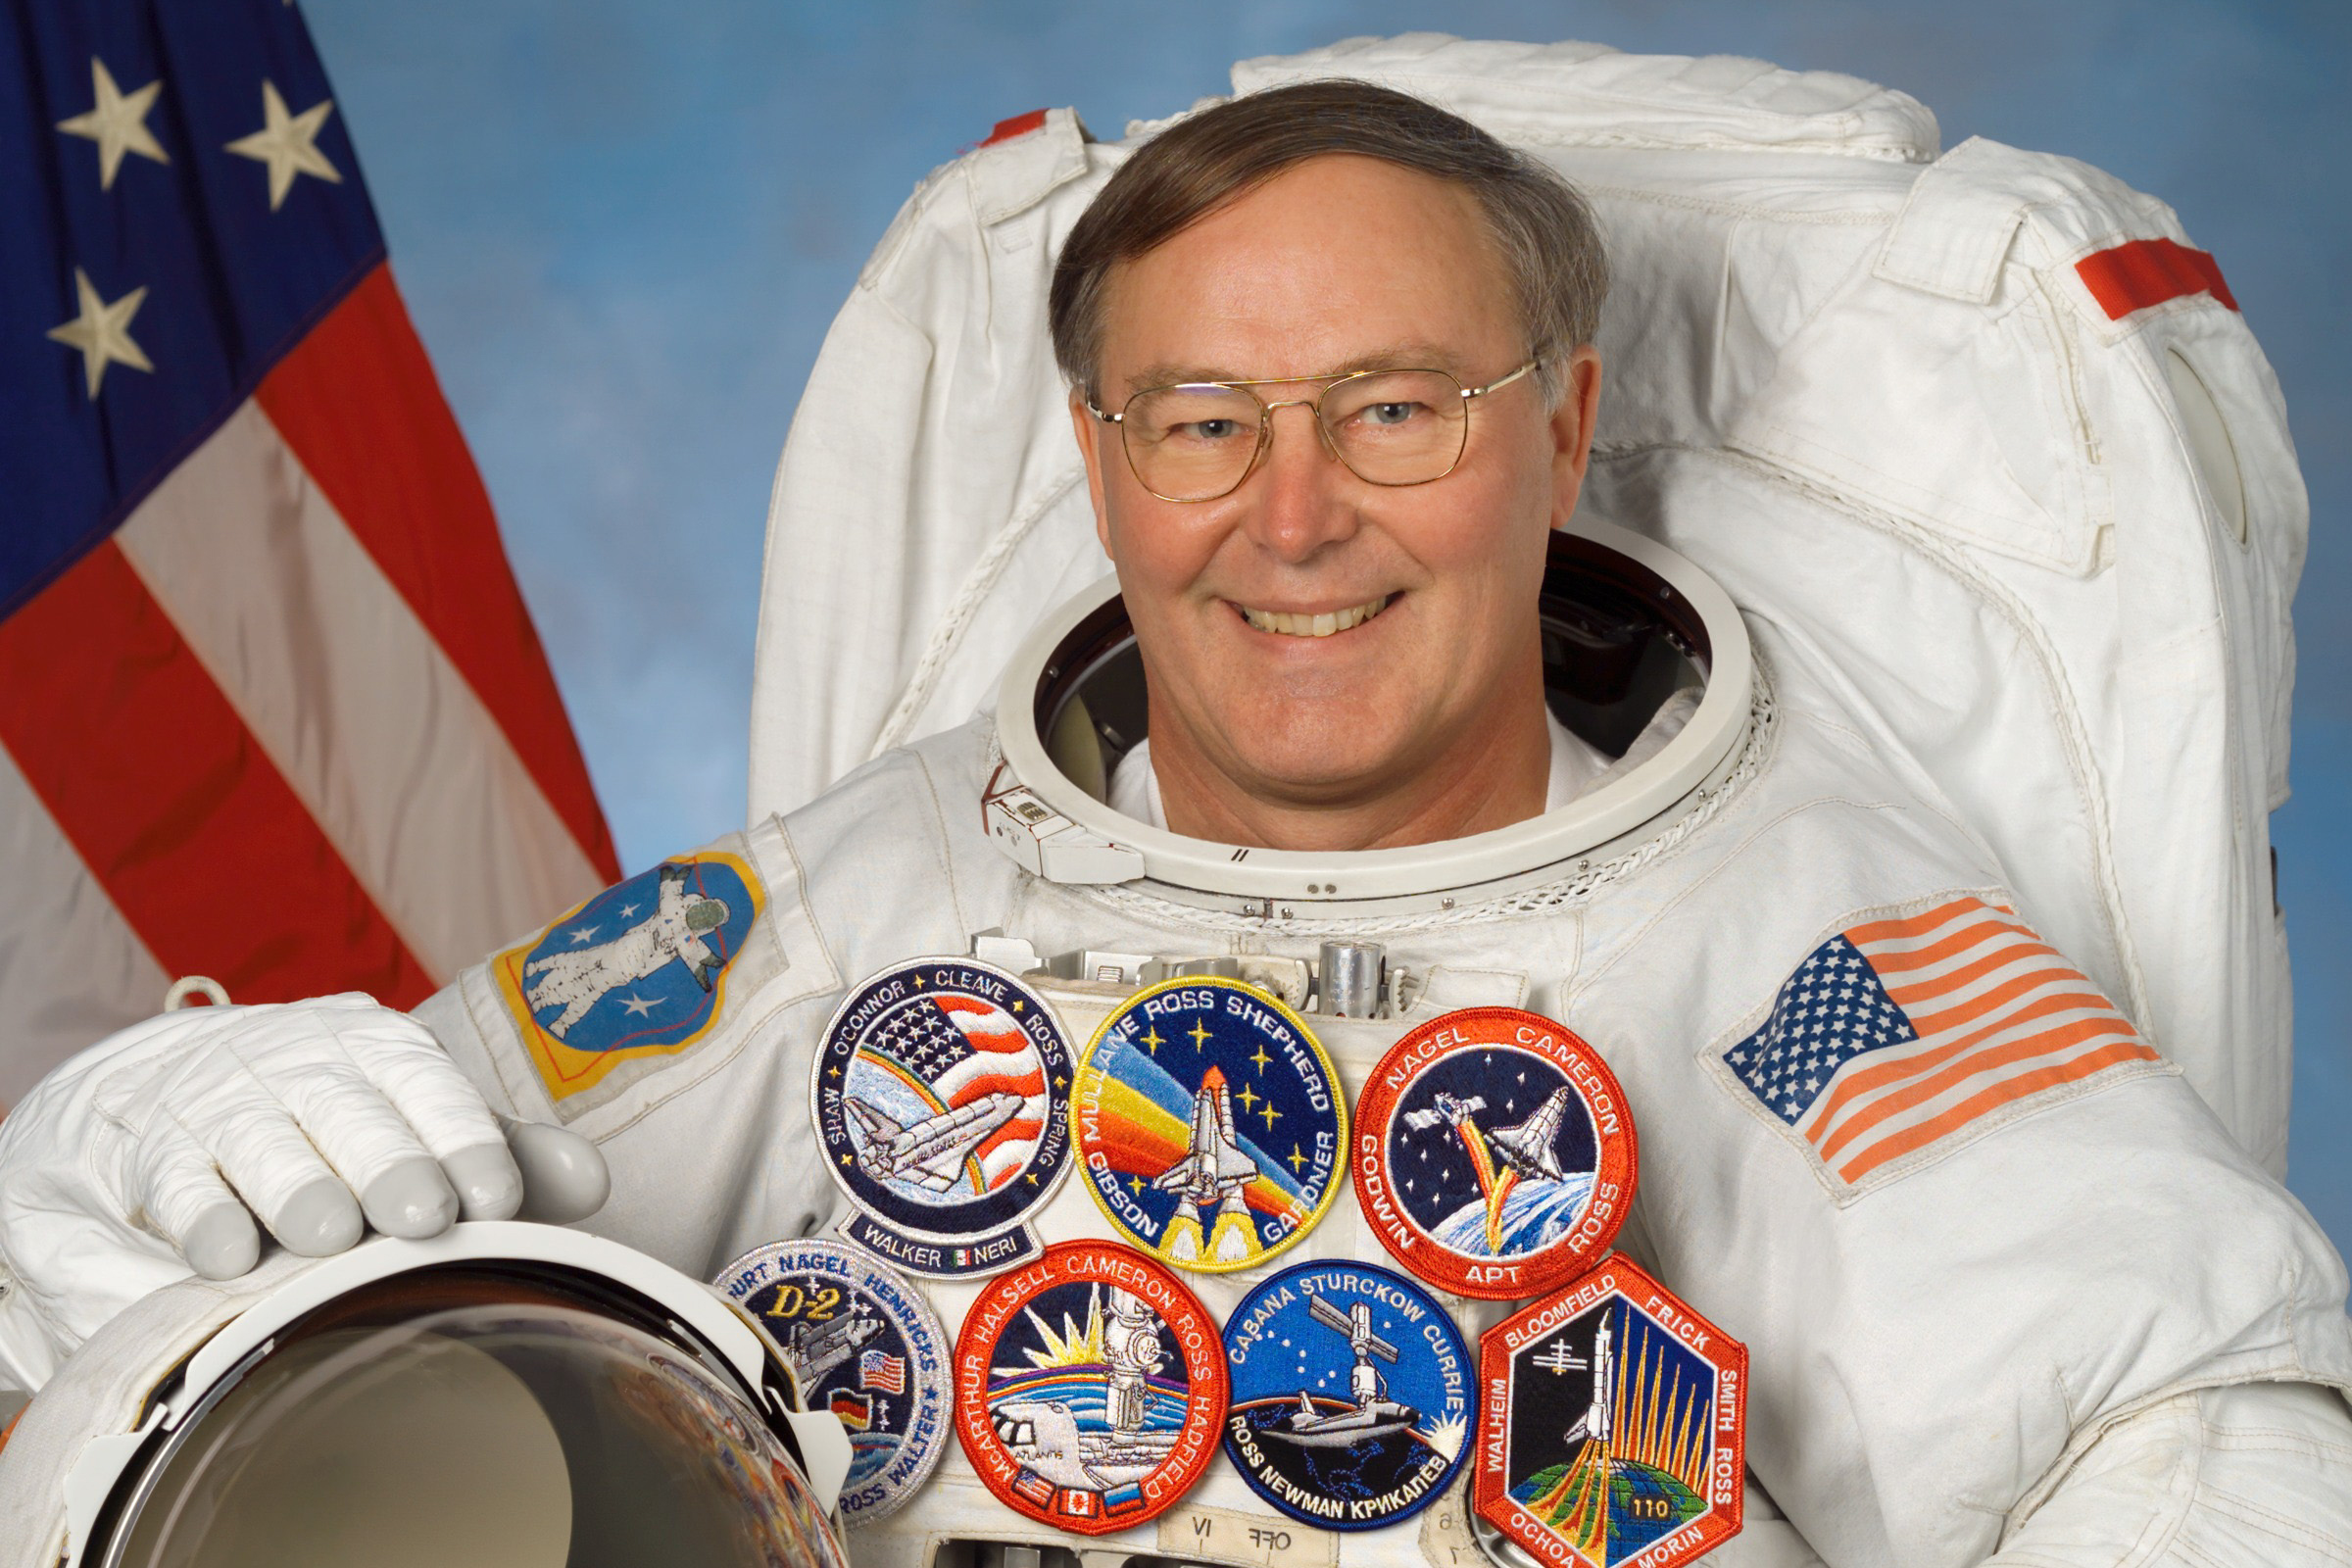 space shuttle astronaut to be wvu scholar in residence as part of